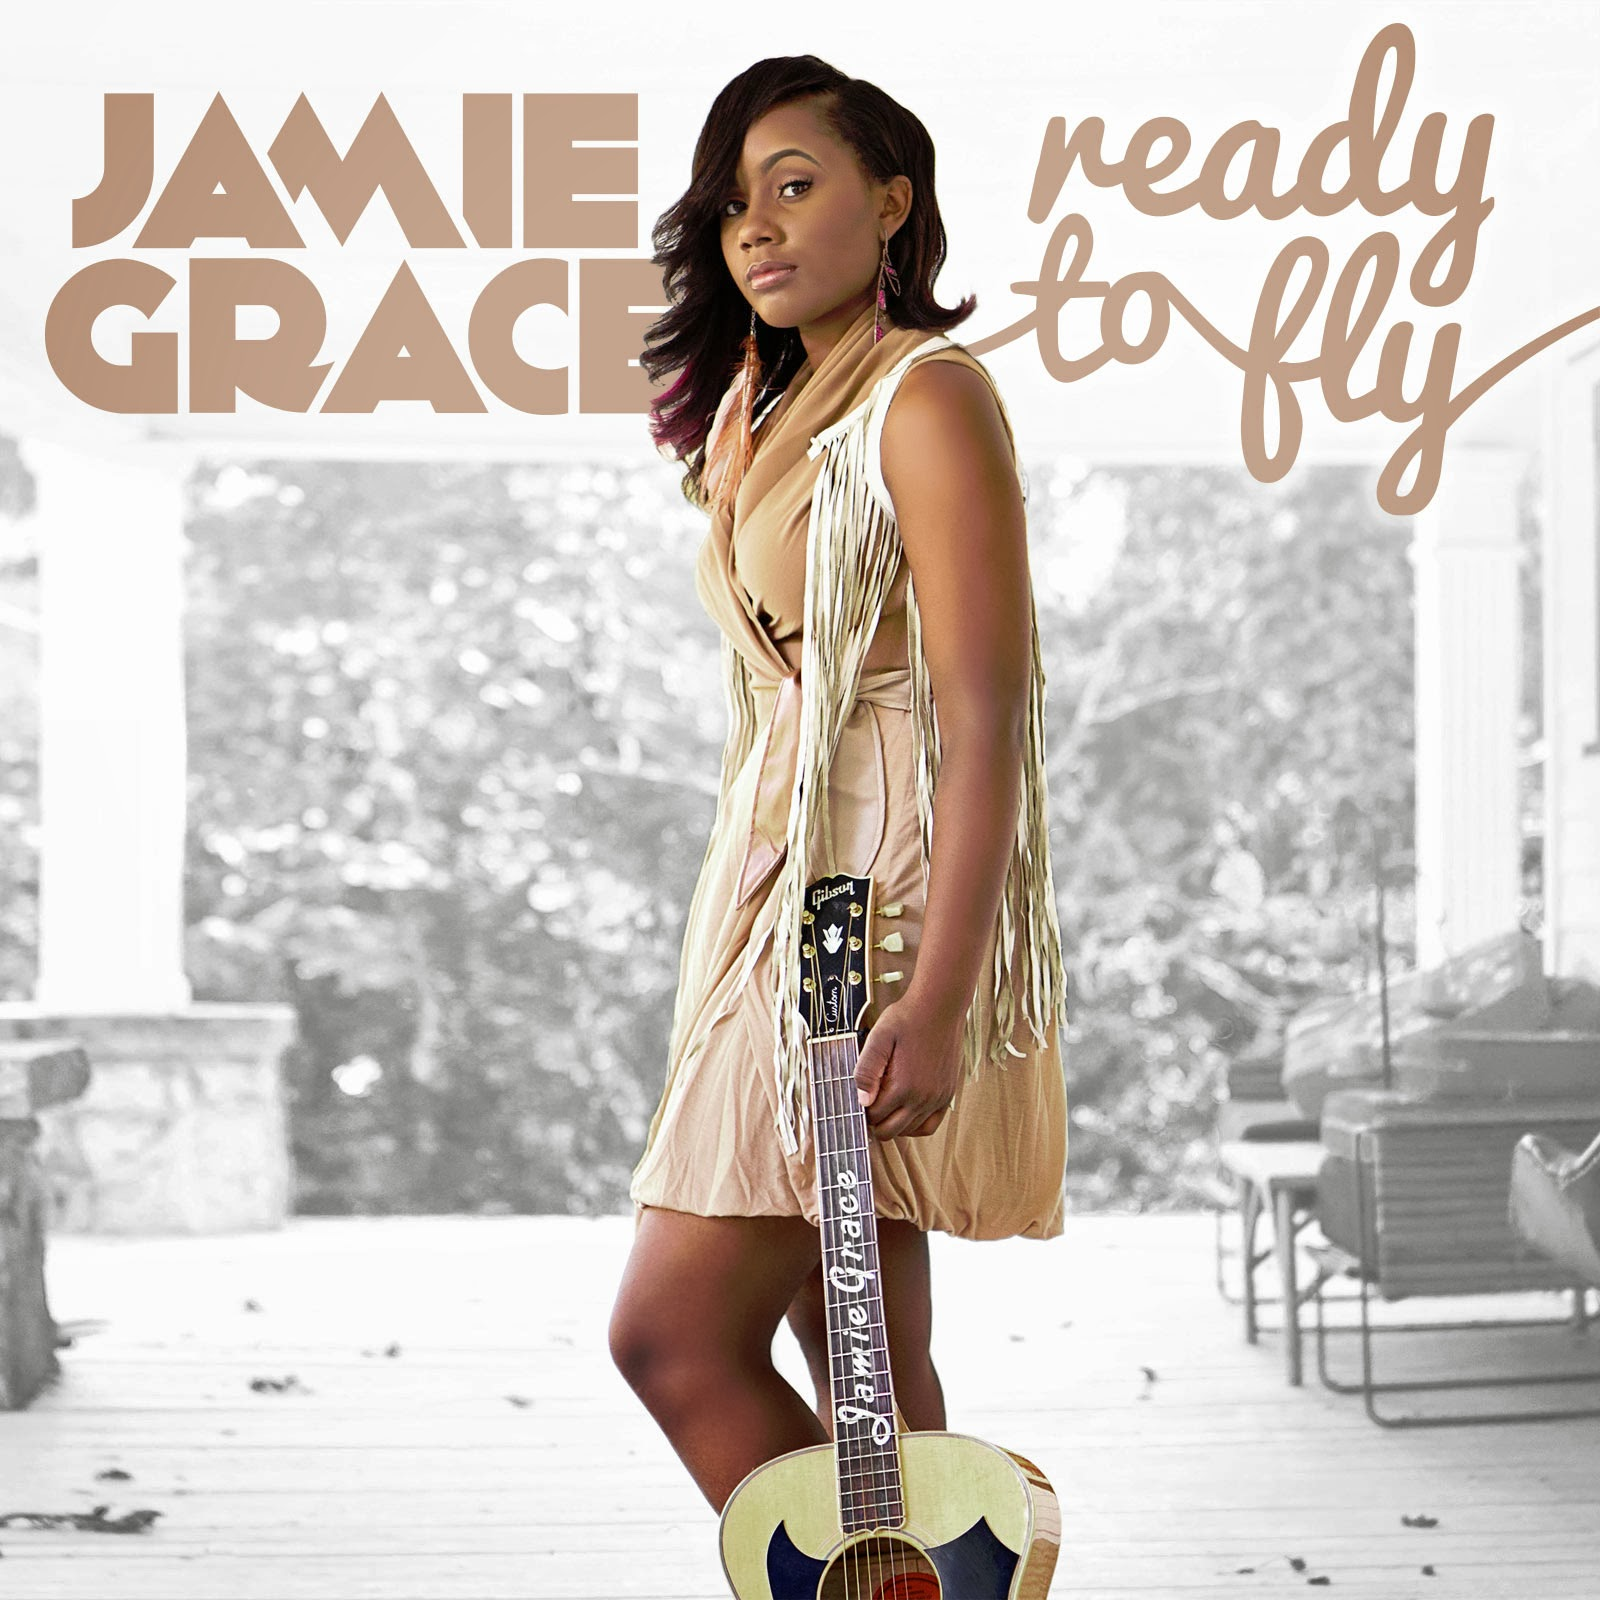 Jamie Grace - Ready to Fly 2014 English Christian Album Download